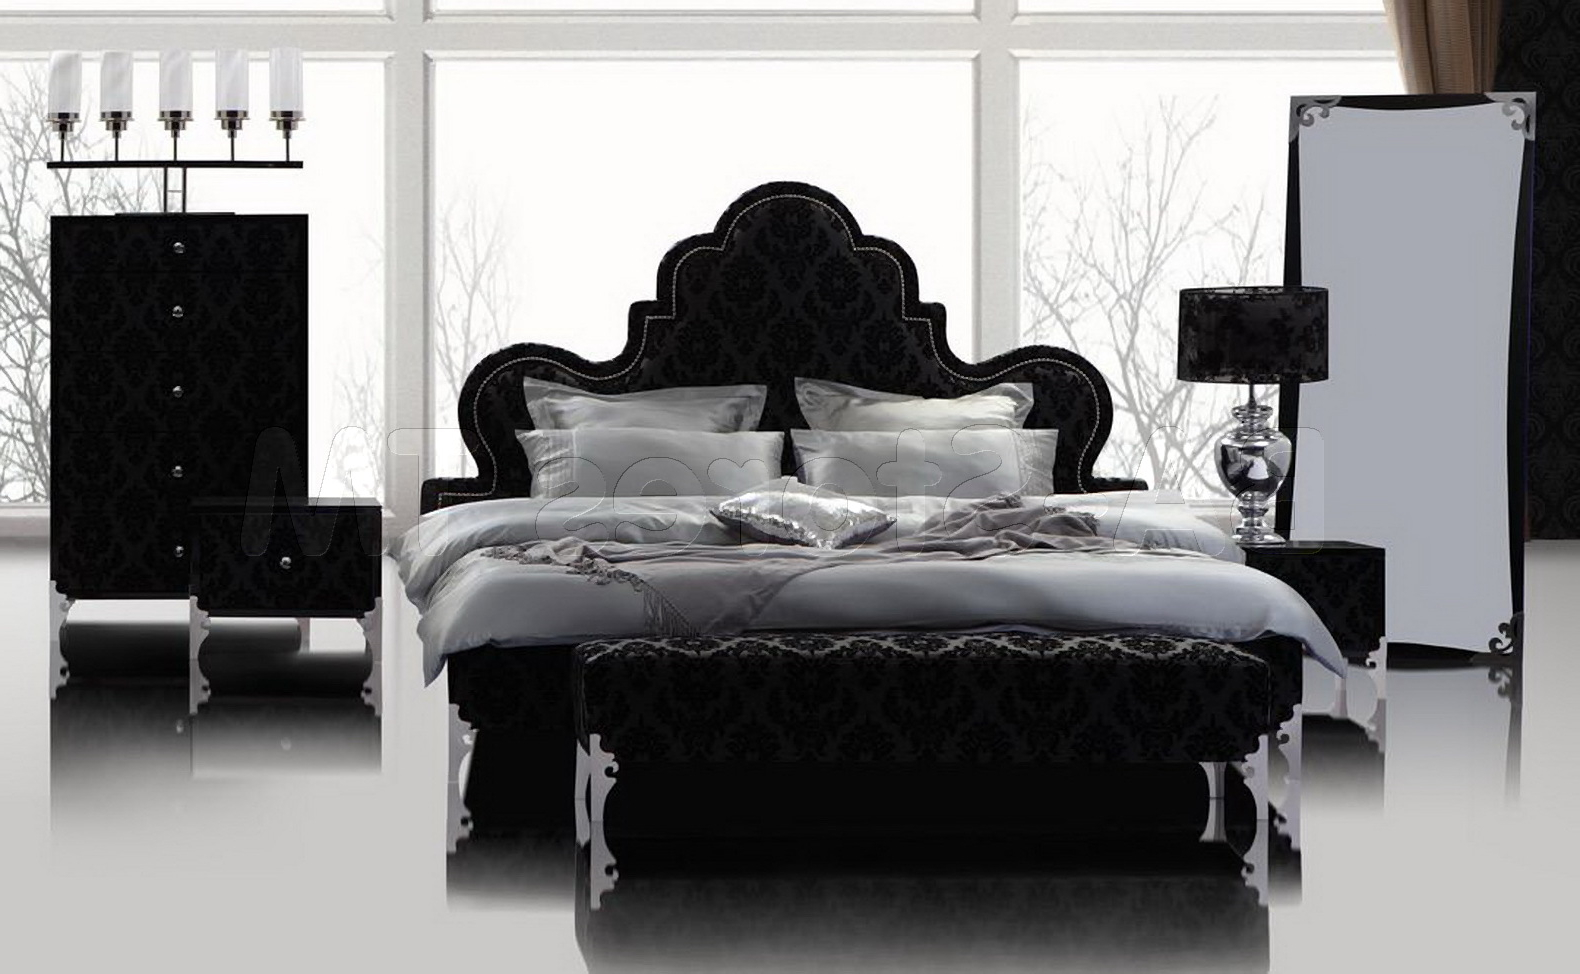 Featured Image of Modern Gothic Bedroom Furnture Set